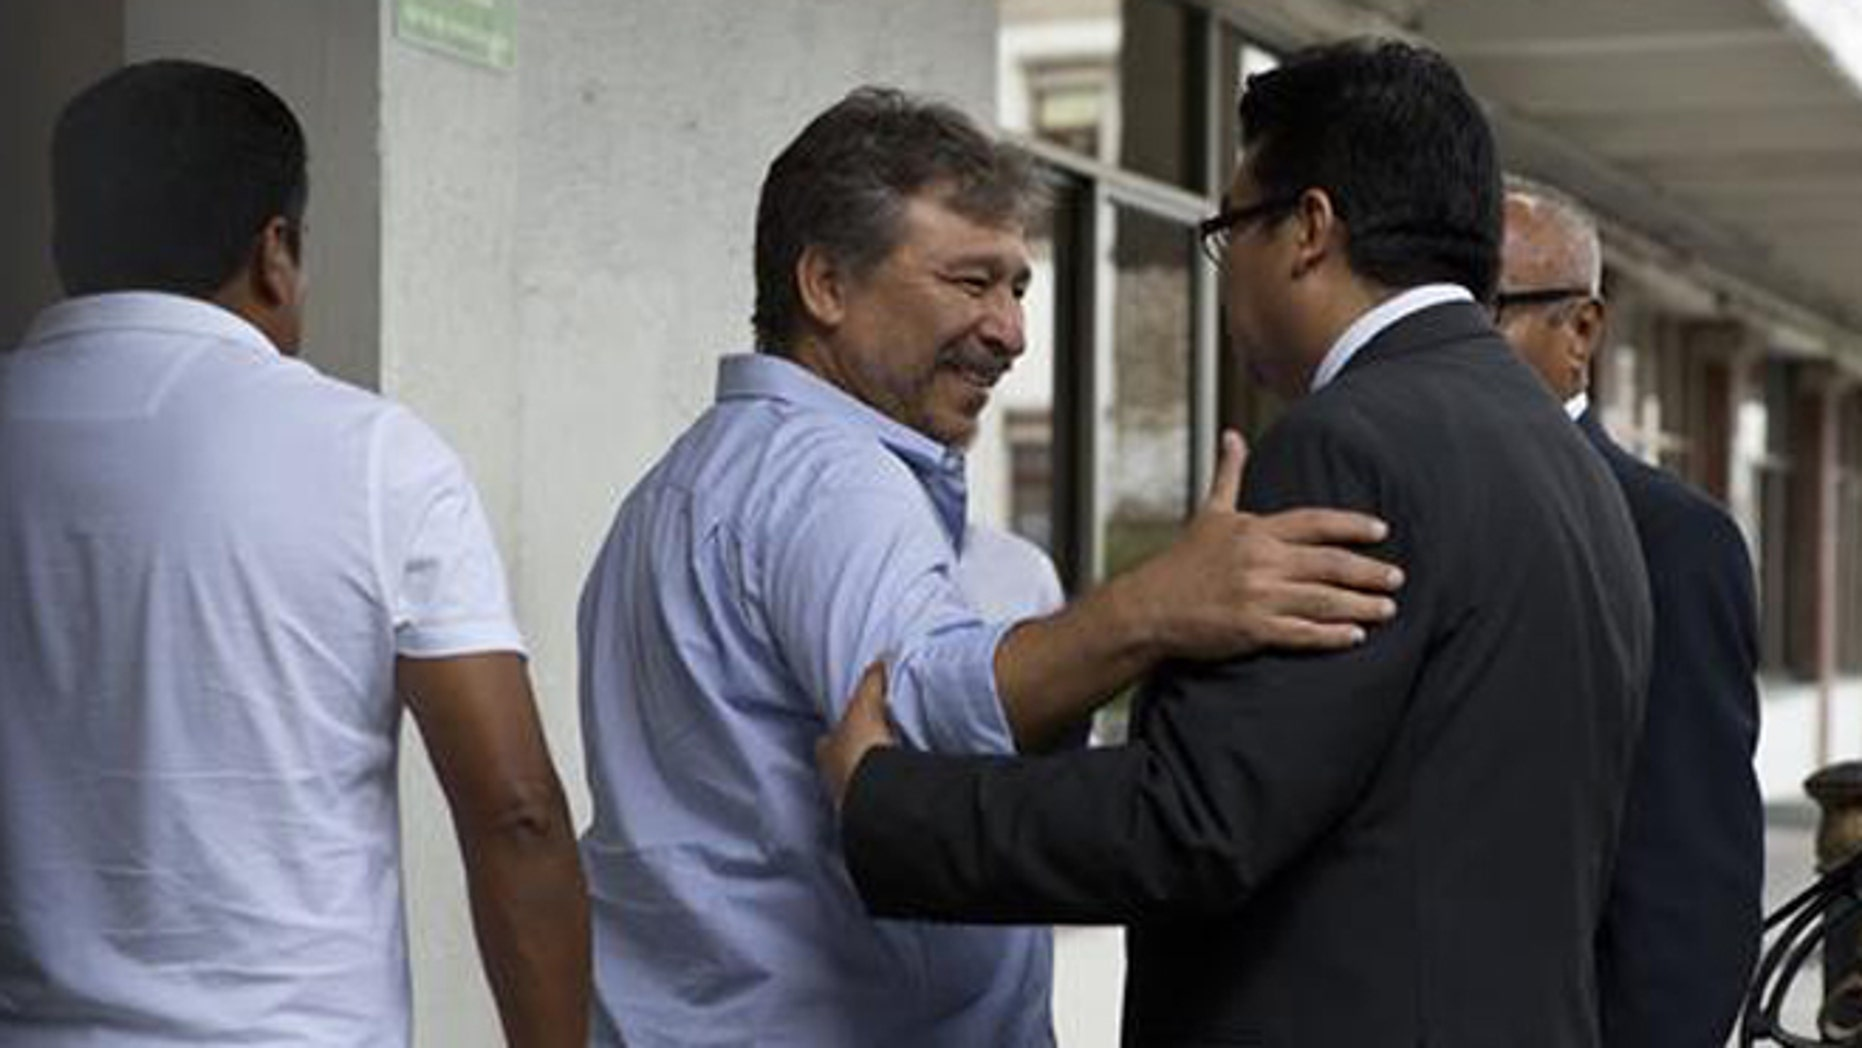 A member of a negotiation group comprised of protesting teachers and a mediation commission greets a government worker as he enters the Interior Ministry for a meeting with Secretary of the Interior Miguel Angel Osorio Chong, in Mexico City, Wednesday, June 22, 2016. The negotiations between the striking radical teachers and the government come three days after a clash between protestors and police in Oaxaca state left eight dead. Though who started shooting is disputed, journalists filmed police firing their weapons in the confrontation, which also left more than 100 injured. (AP Photo/Rebecca Blackwell)